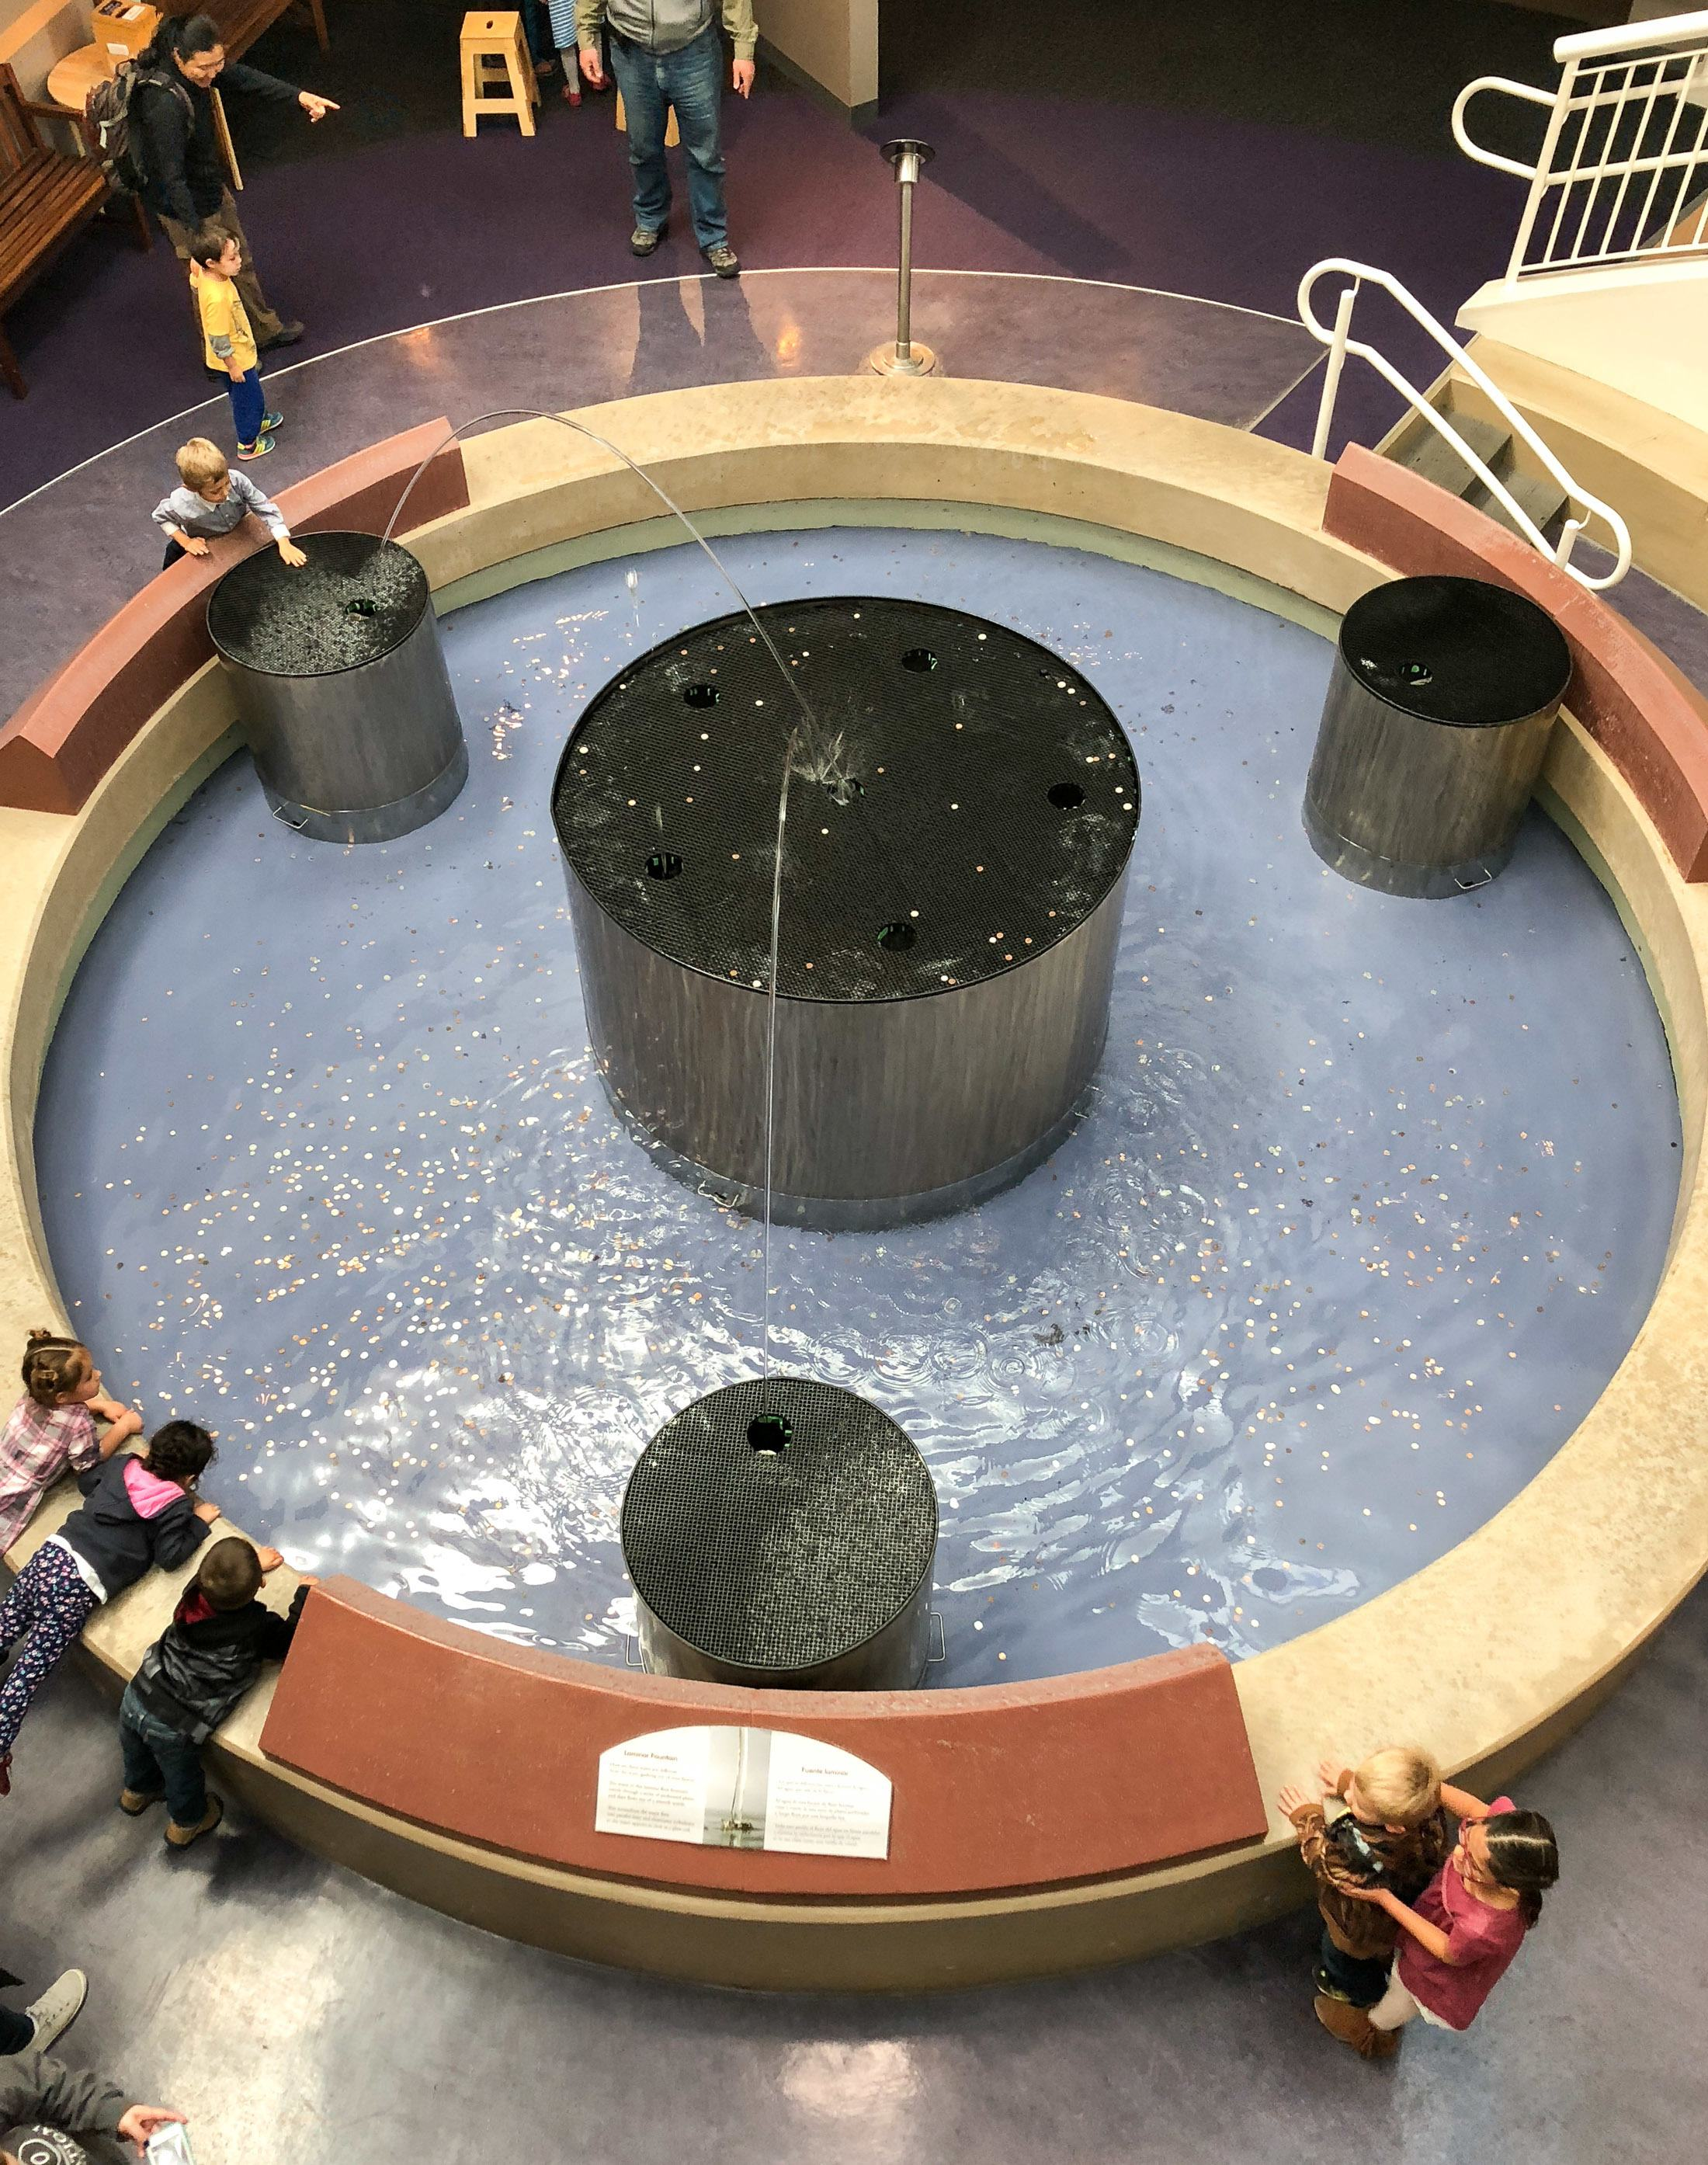 Explora Science Center is one of the best things to do in Albuquerque with kids.